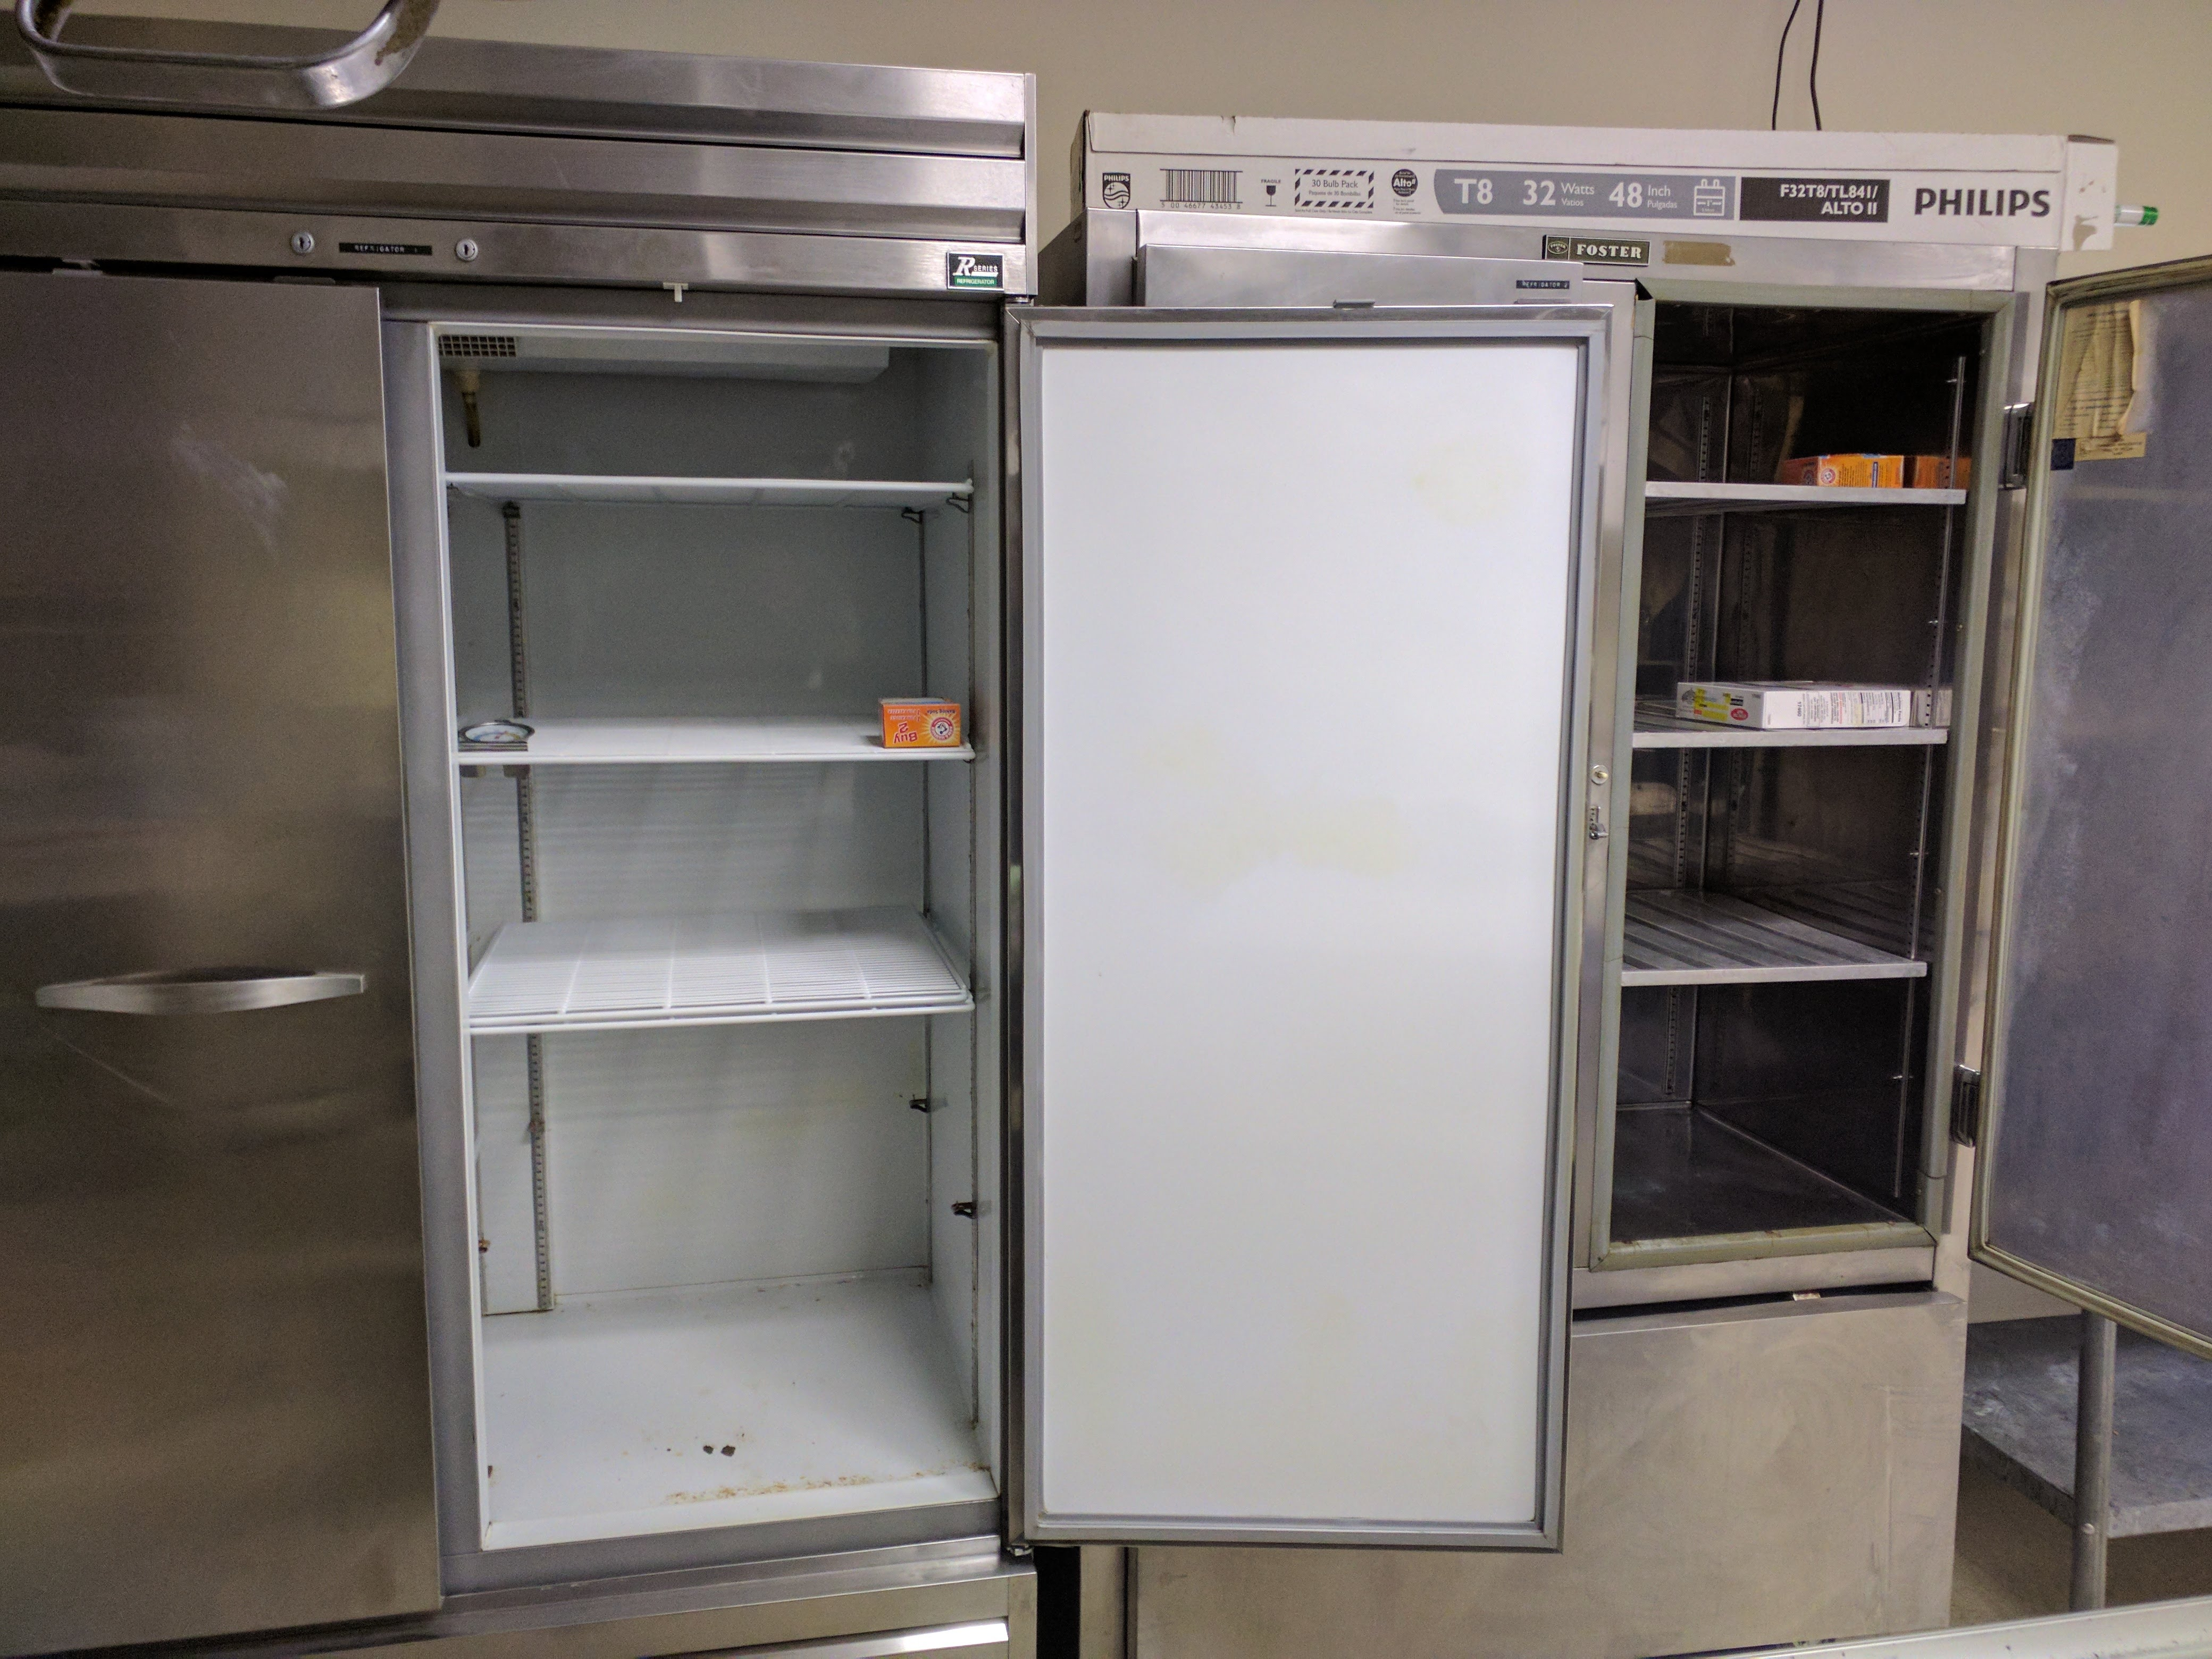 Two industrial refrigerators